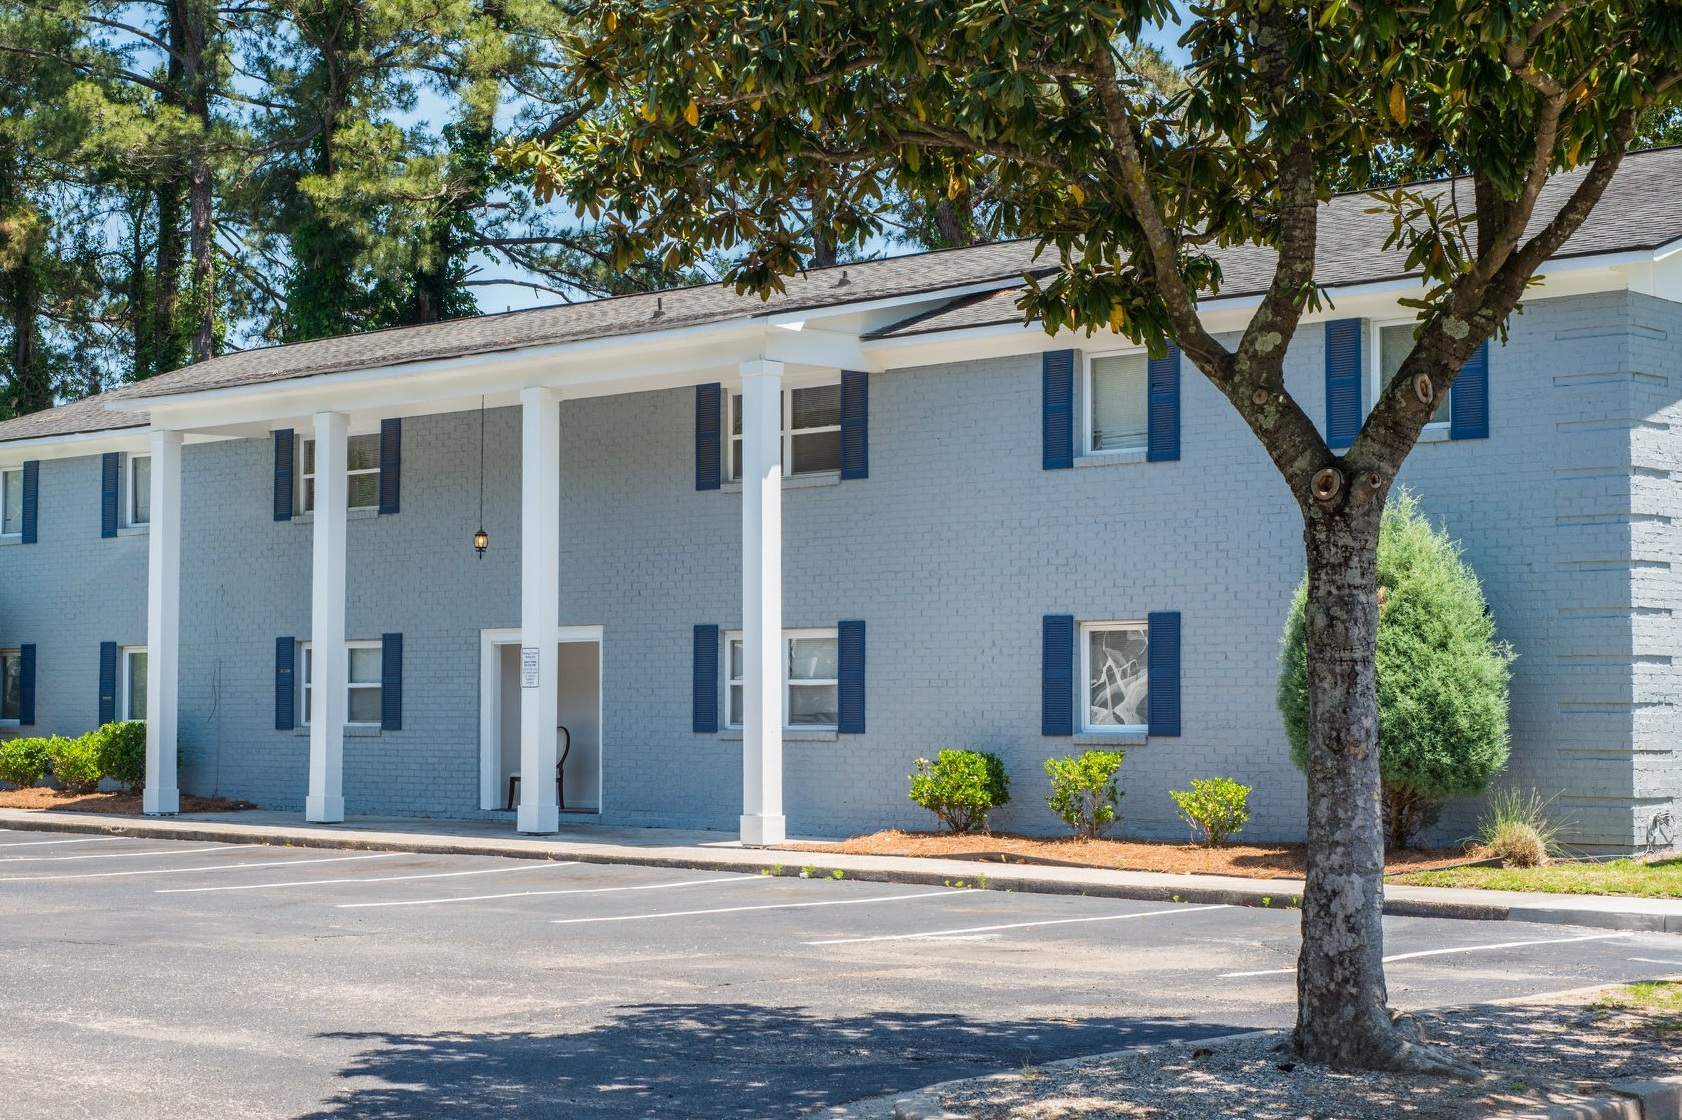 Arbor Square   North Charleston, SC  Utilizing shared staff from Cedar Key, Arbor Square is a market rate project purchased in December of 2017. Well located within its sub-market, this off-market acquisition represented an exciting opportunity to re-brand, renovate, and improve operations.